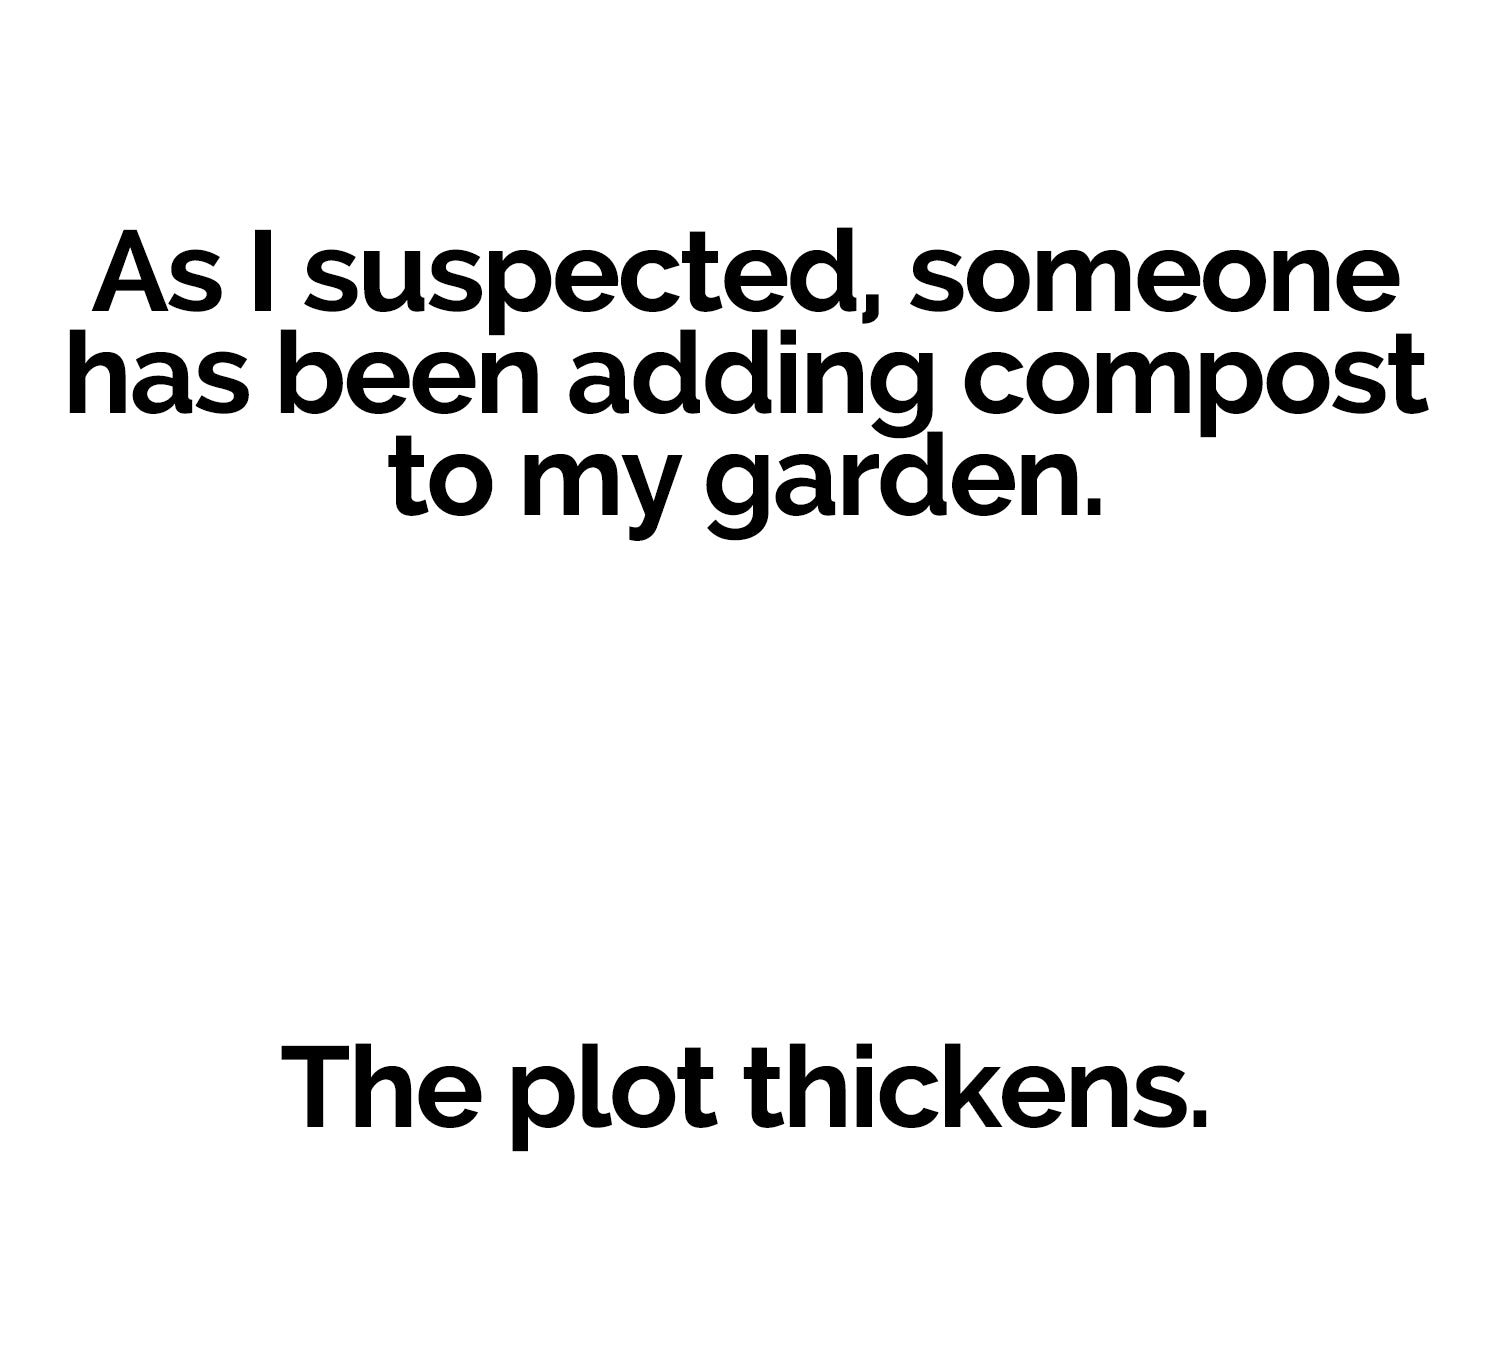 Garden Meme: As I suspected, someone has been adding compost to my garden. The plot thickens.